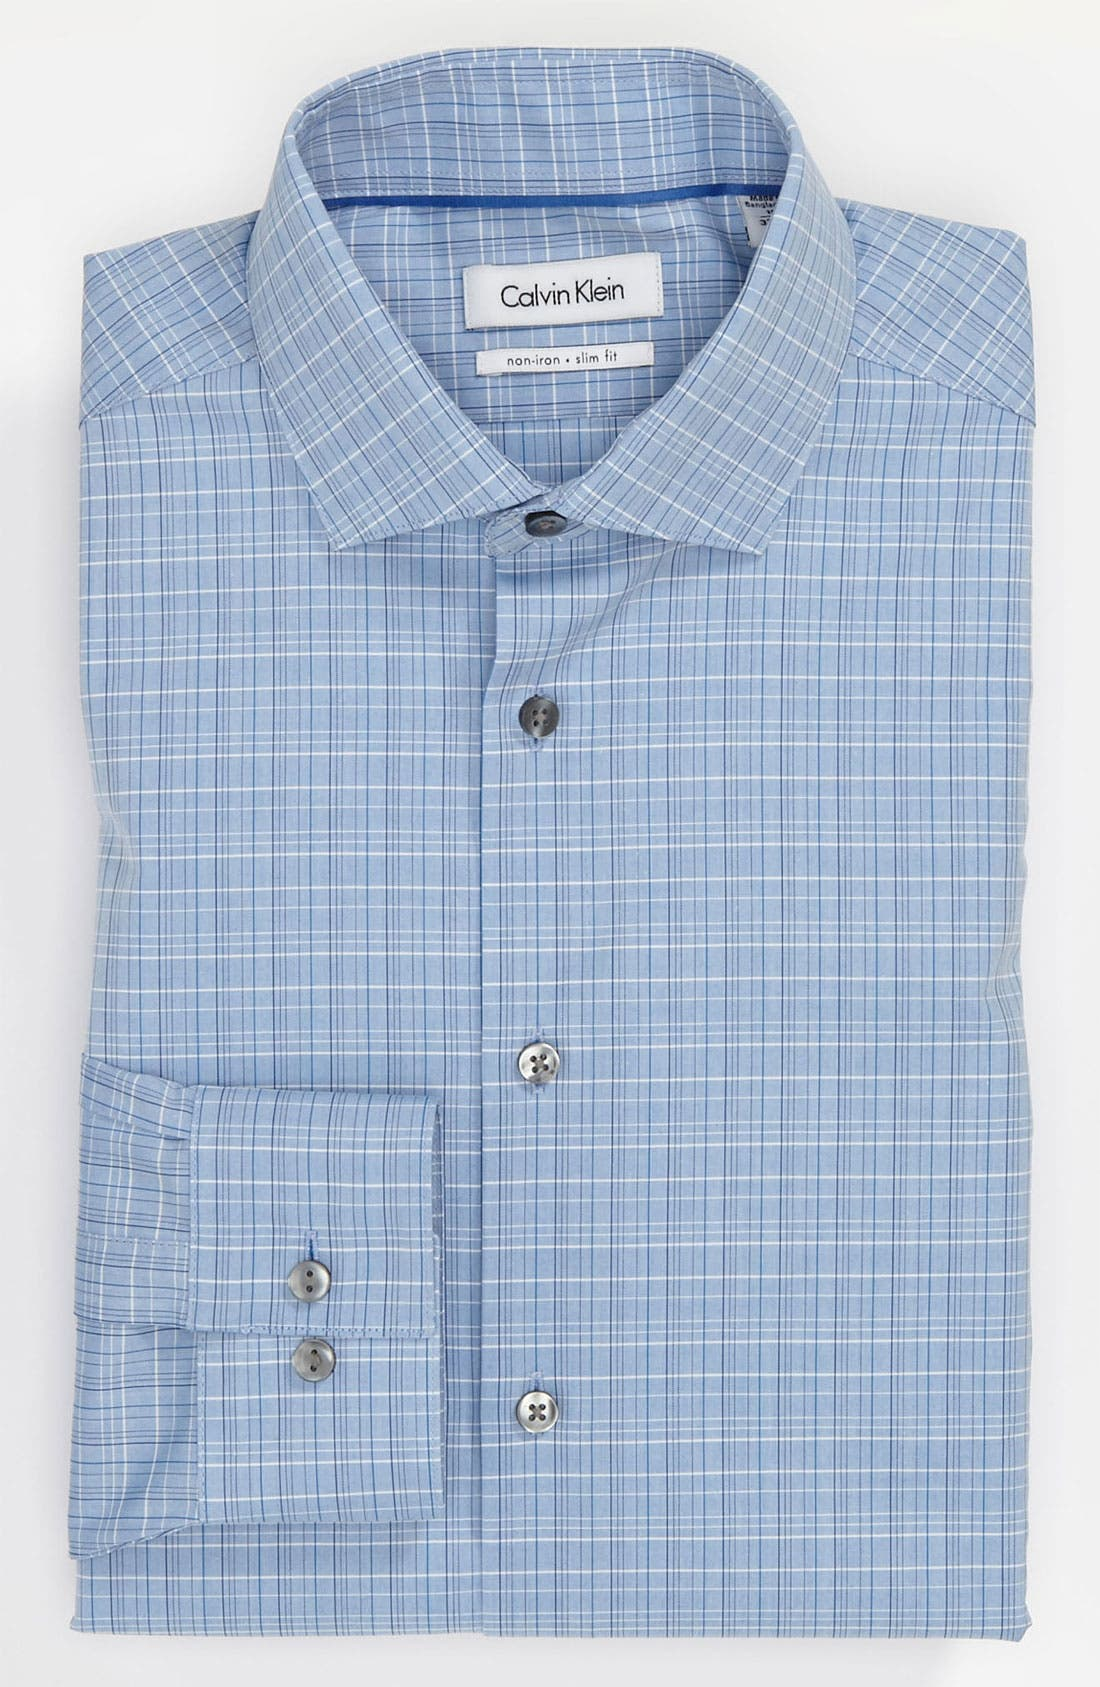 Alternate Image 1 Selected - Calvin Klein Slim Fit Dress Shirt